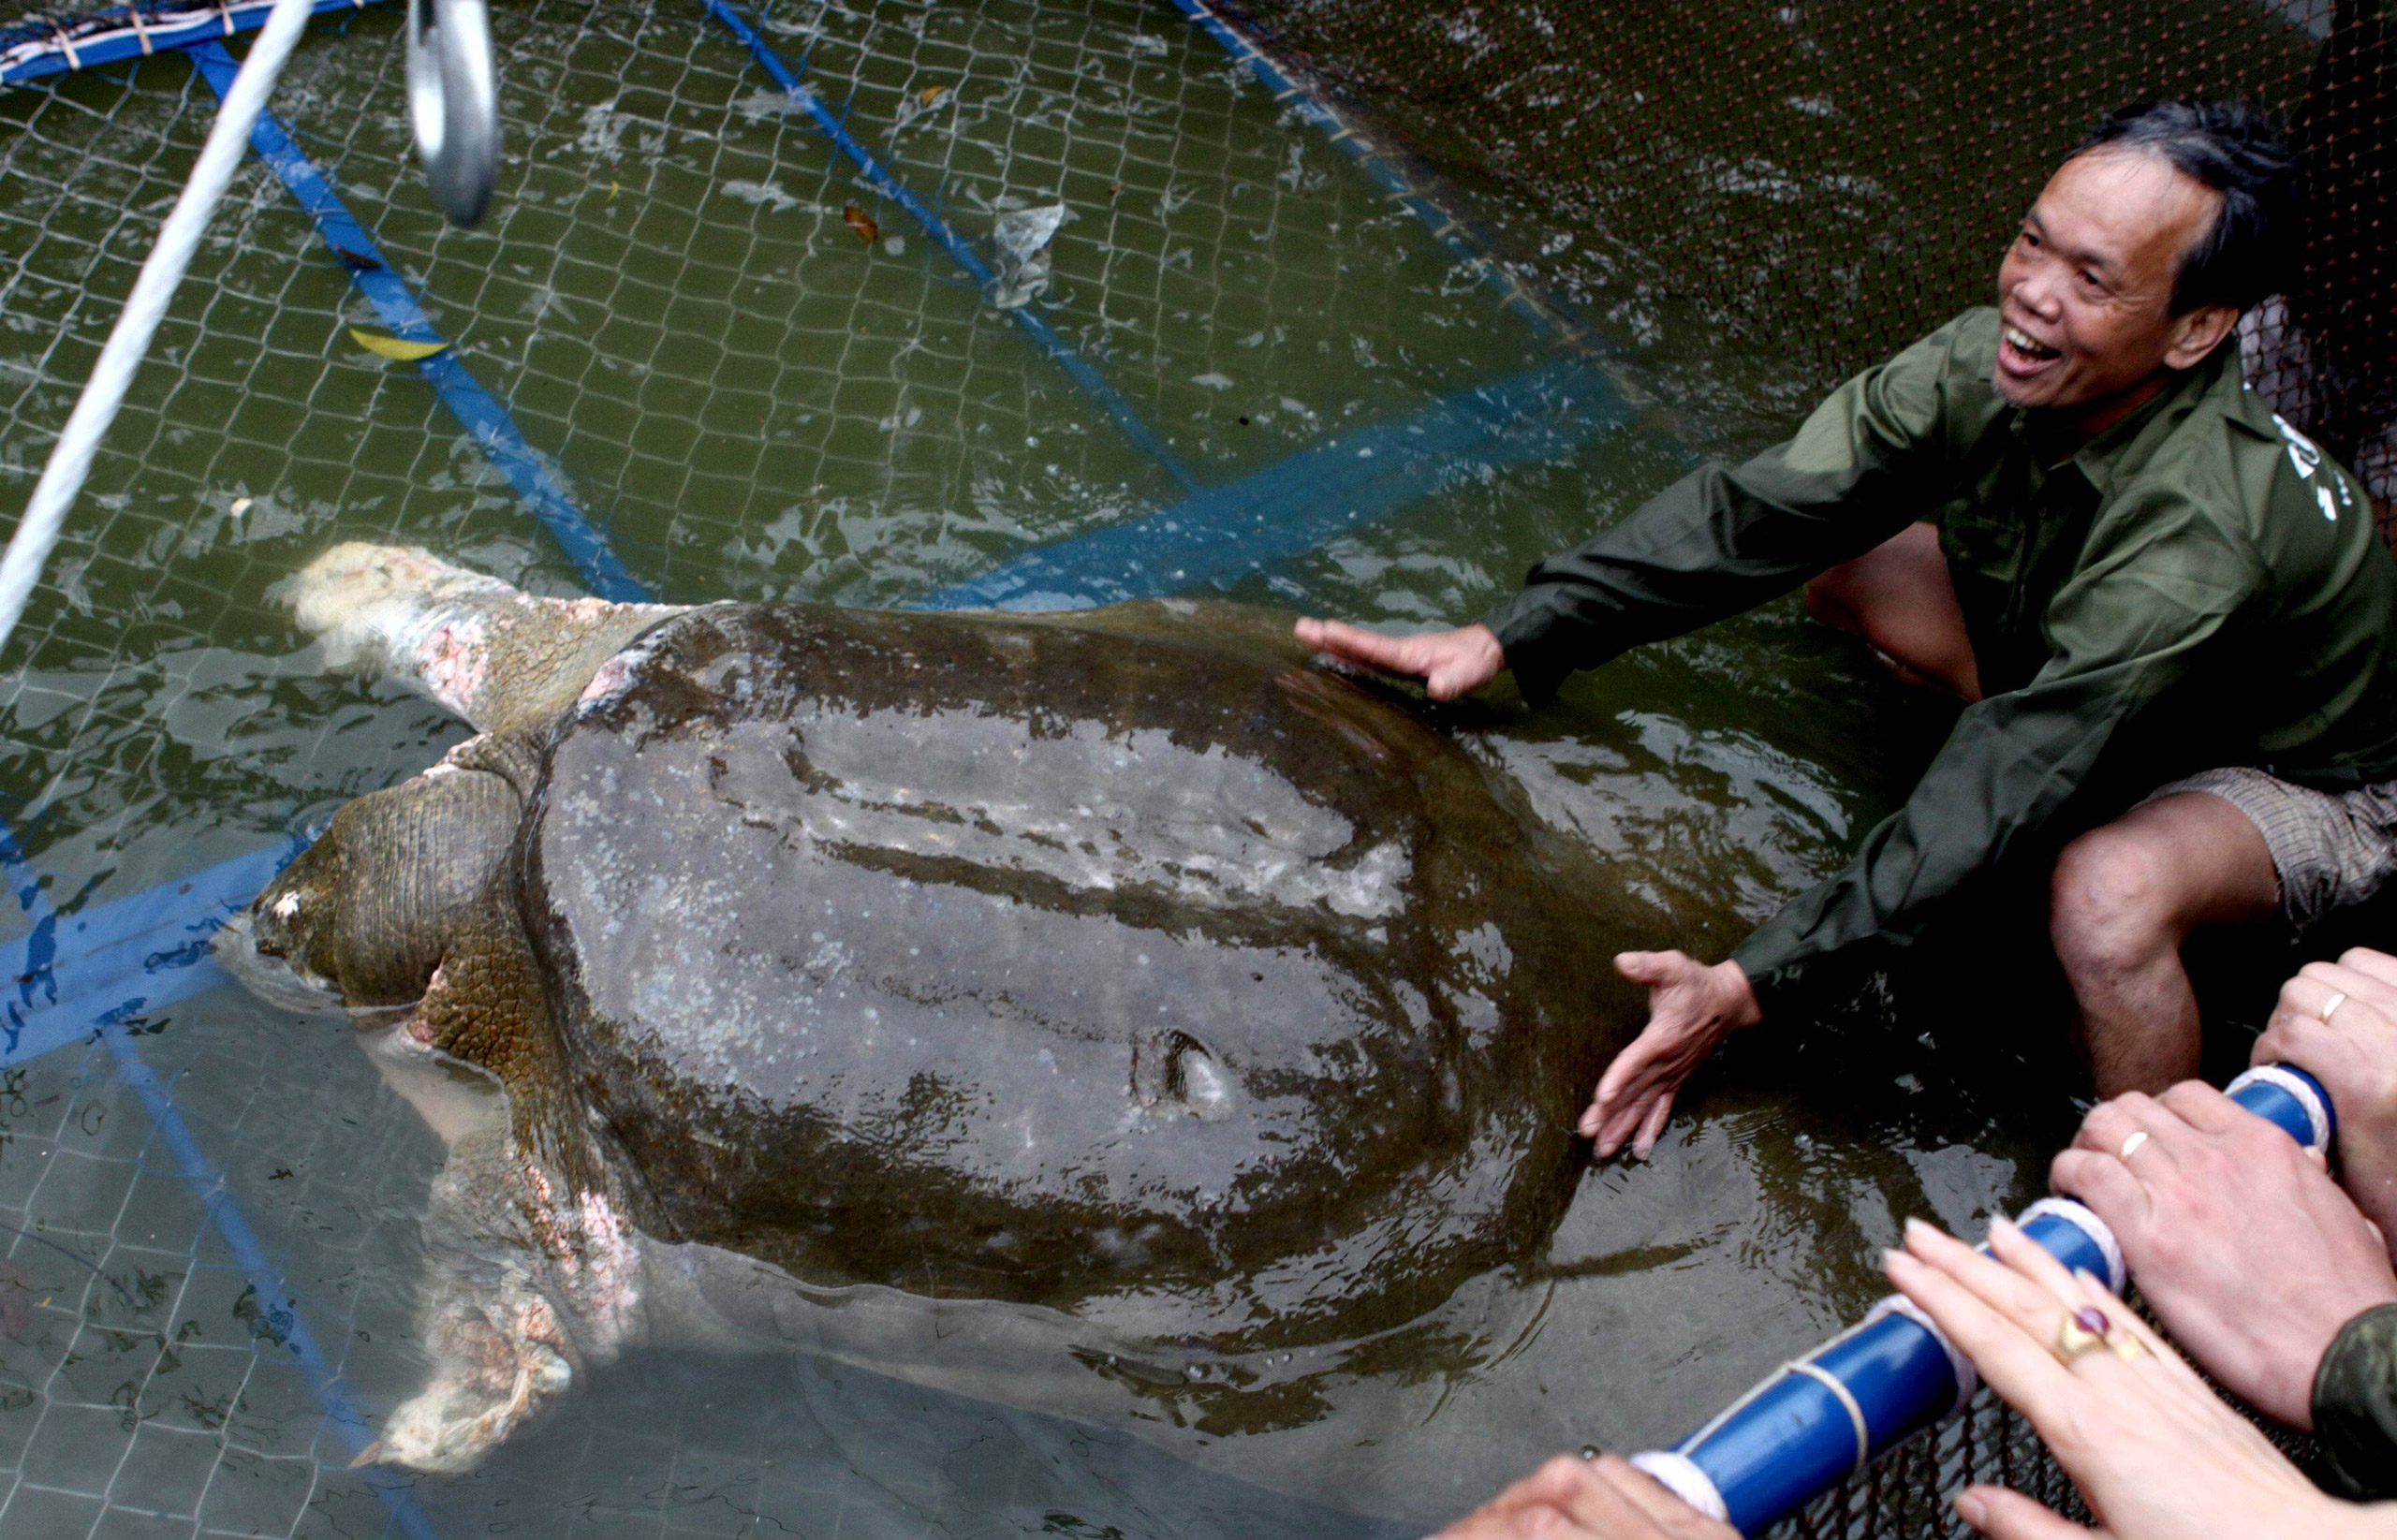 A giant soft-shell turtle (Rafetus swinhoei), considered a sacred symbol of Vietnamese independence, is guided into a cage for a health check at Hoan Kiem lake in Hanoi, on April 3, 2011.